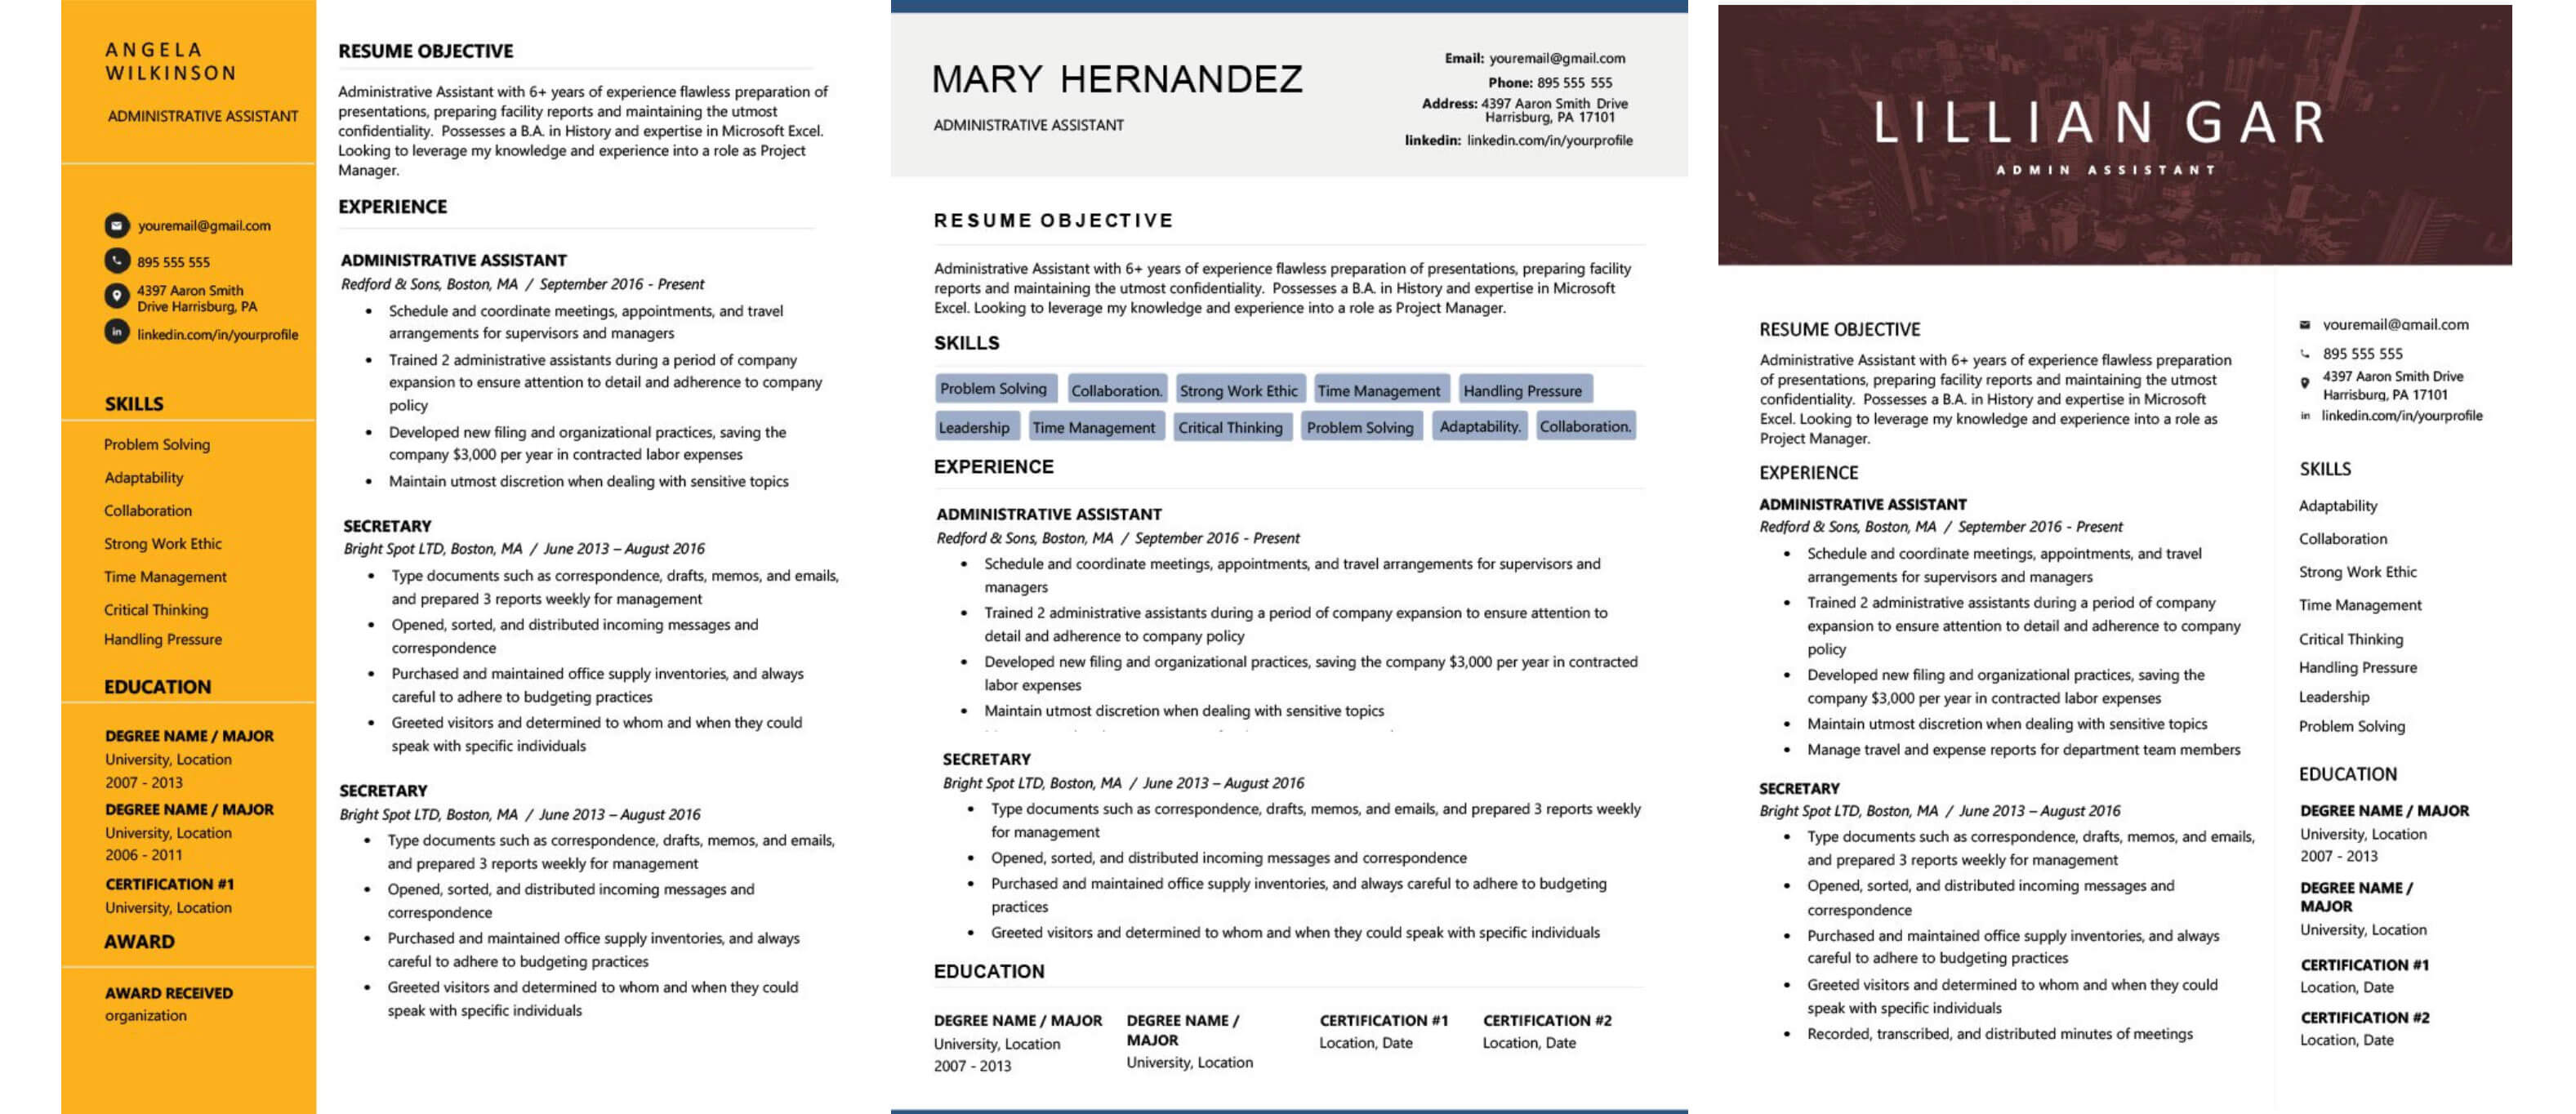 personal shopper beginner cv example